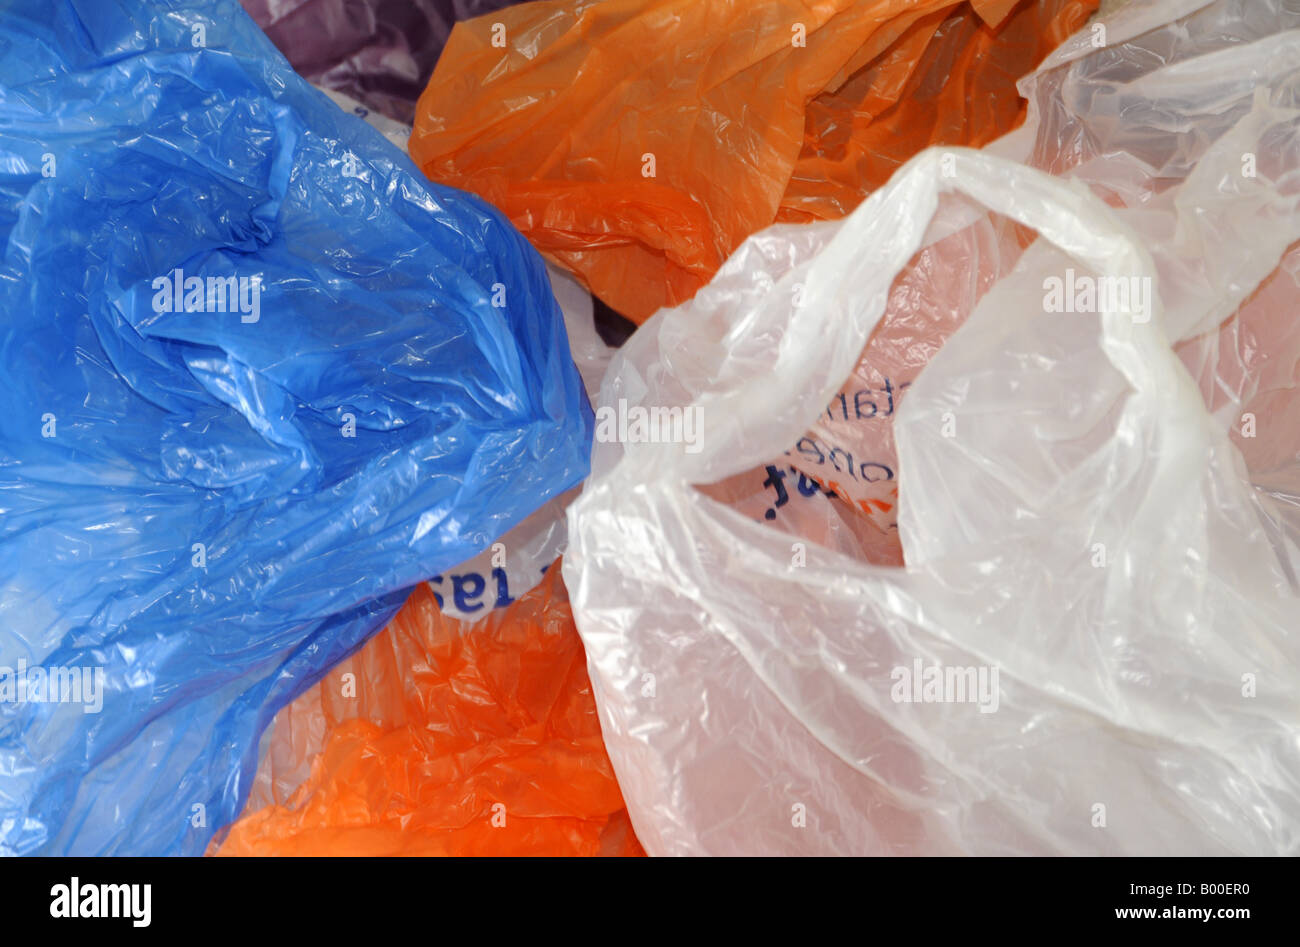 Plastic bags, London, UK - Stock Image